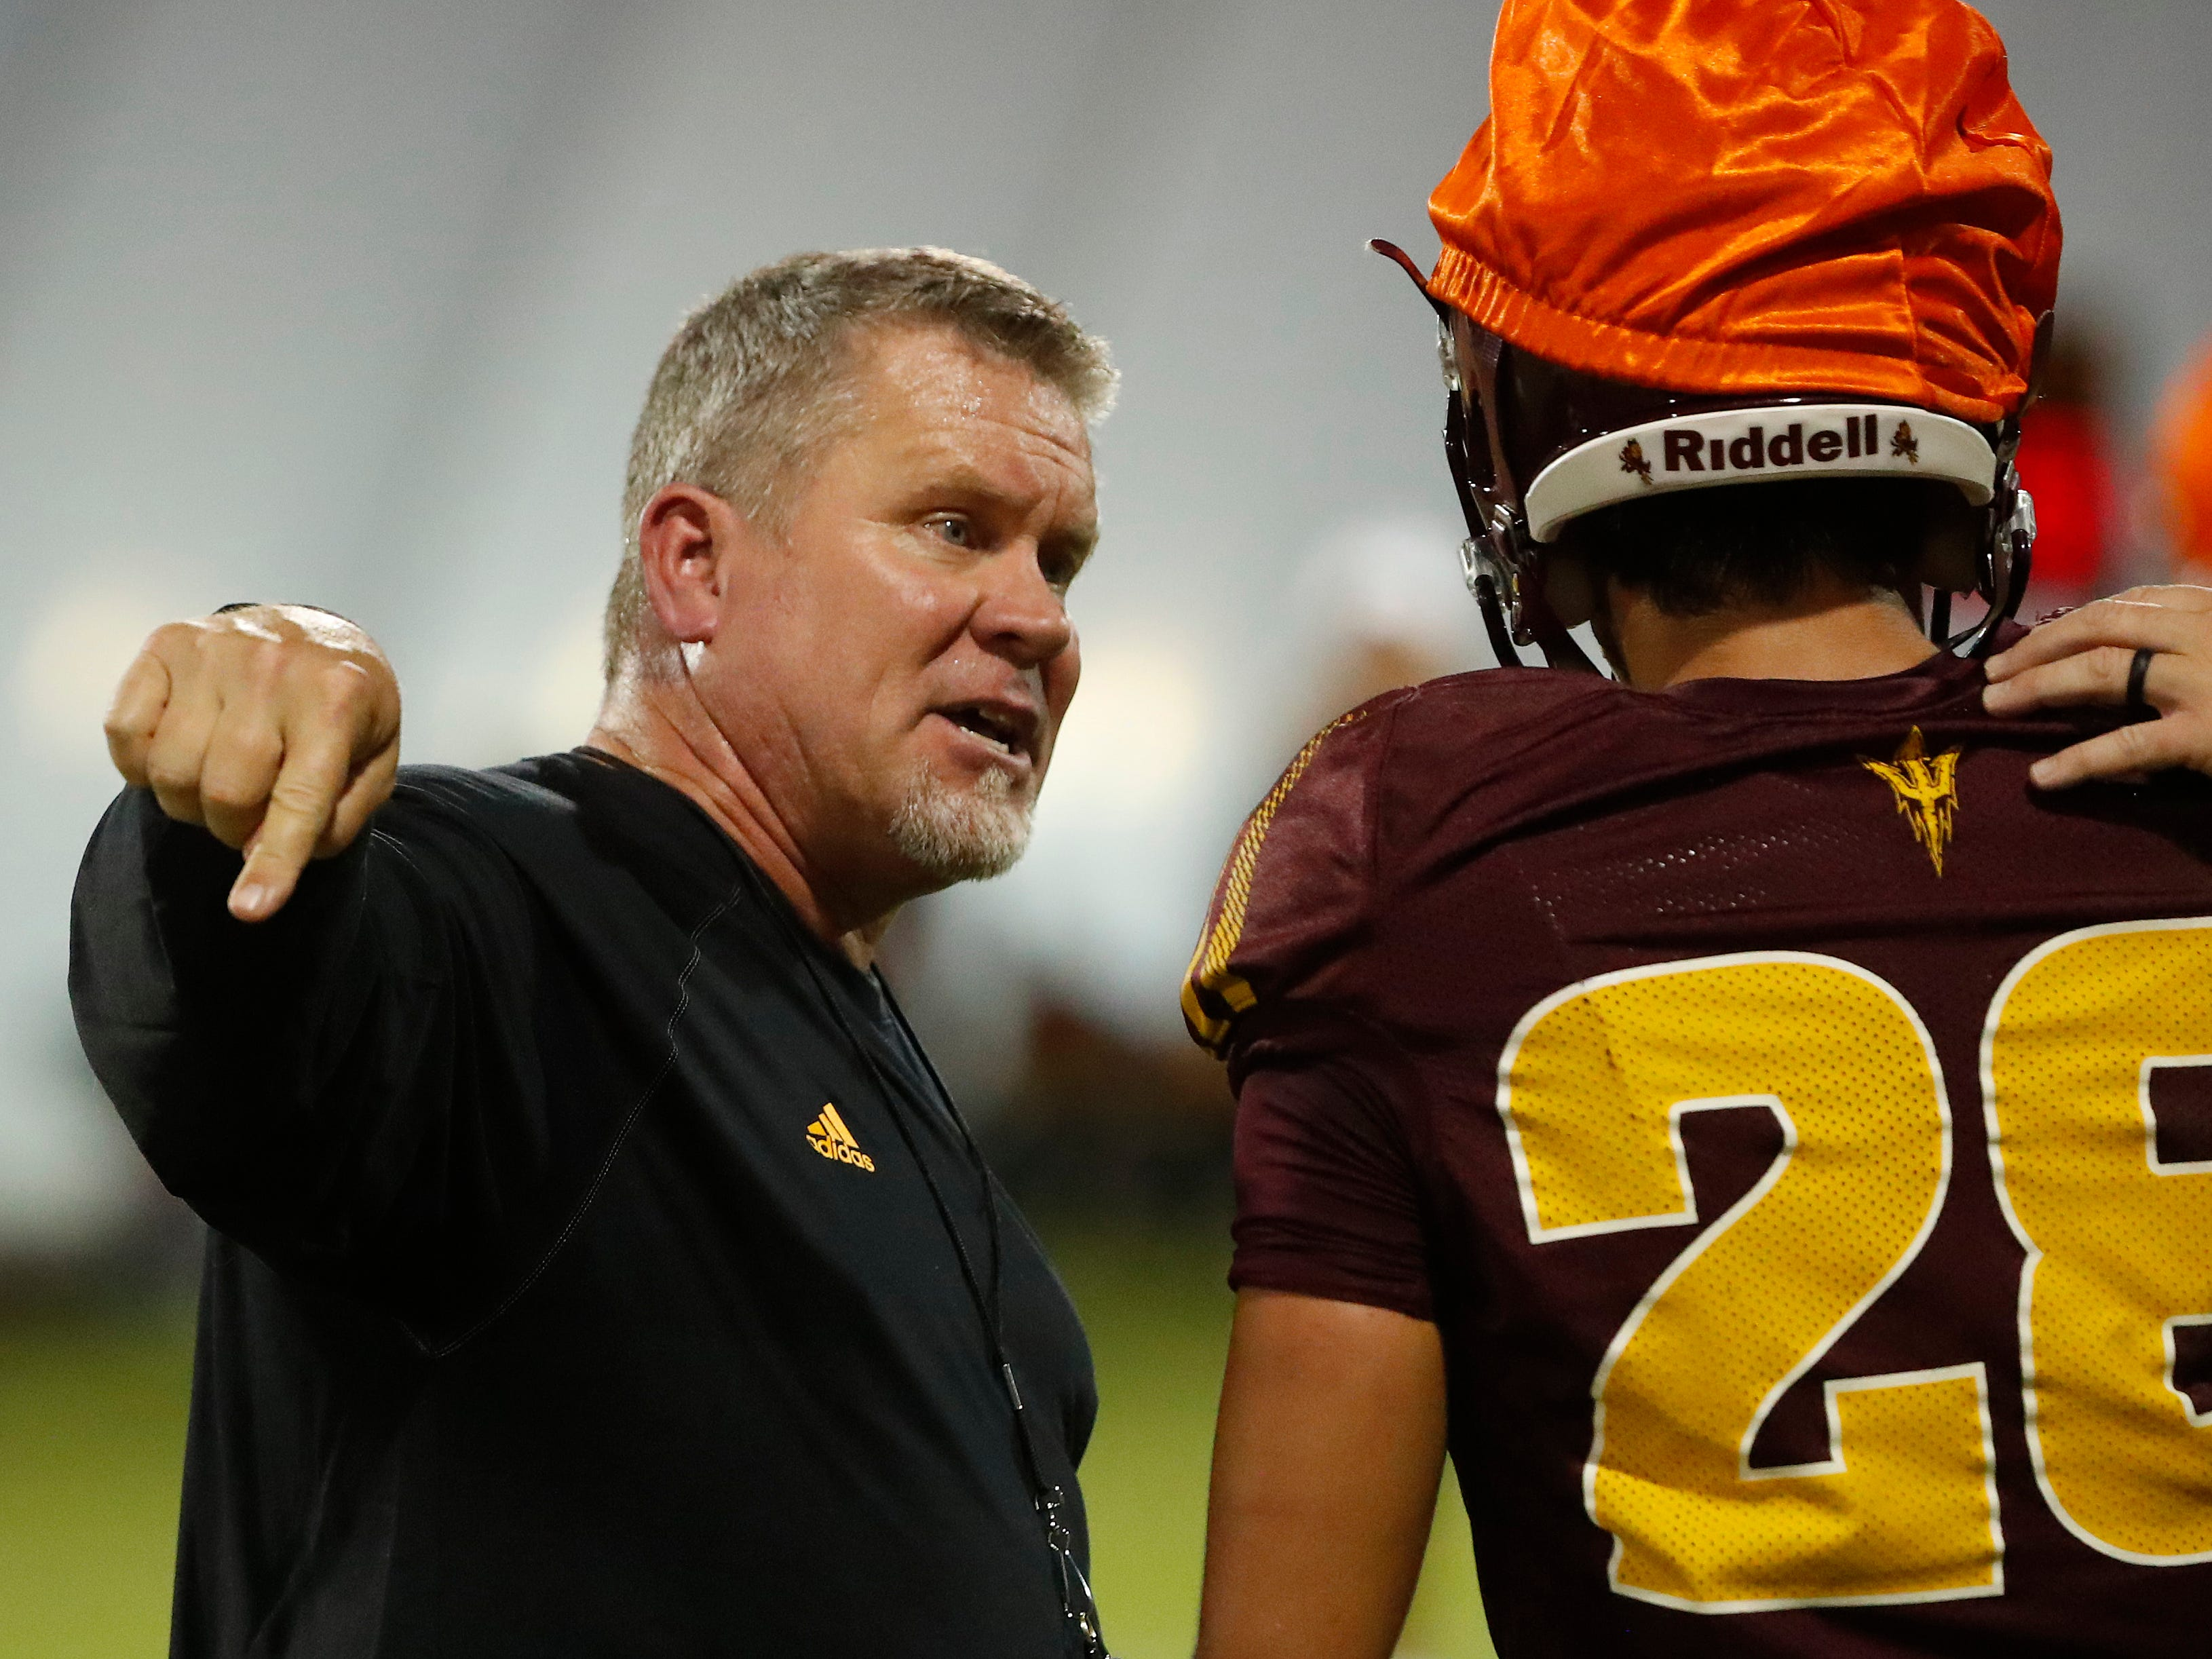 ASU's special teams coordinator Shawn Slocum yells at Angel Ruiz (28) during the ASU scrimmage at Kajikawa Practice Fields in Tempe, Ariz. on Aug. 11, 2018.